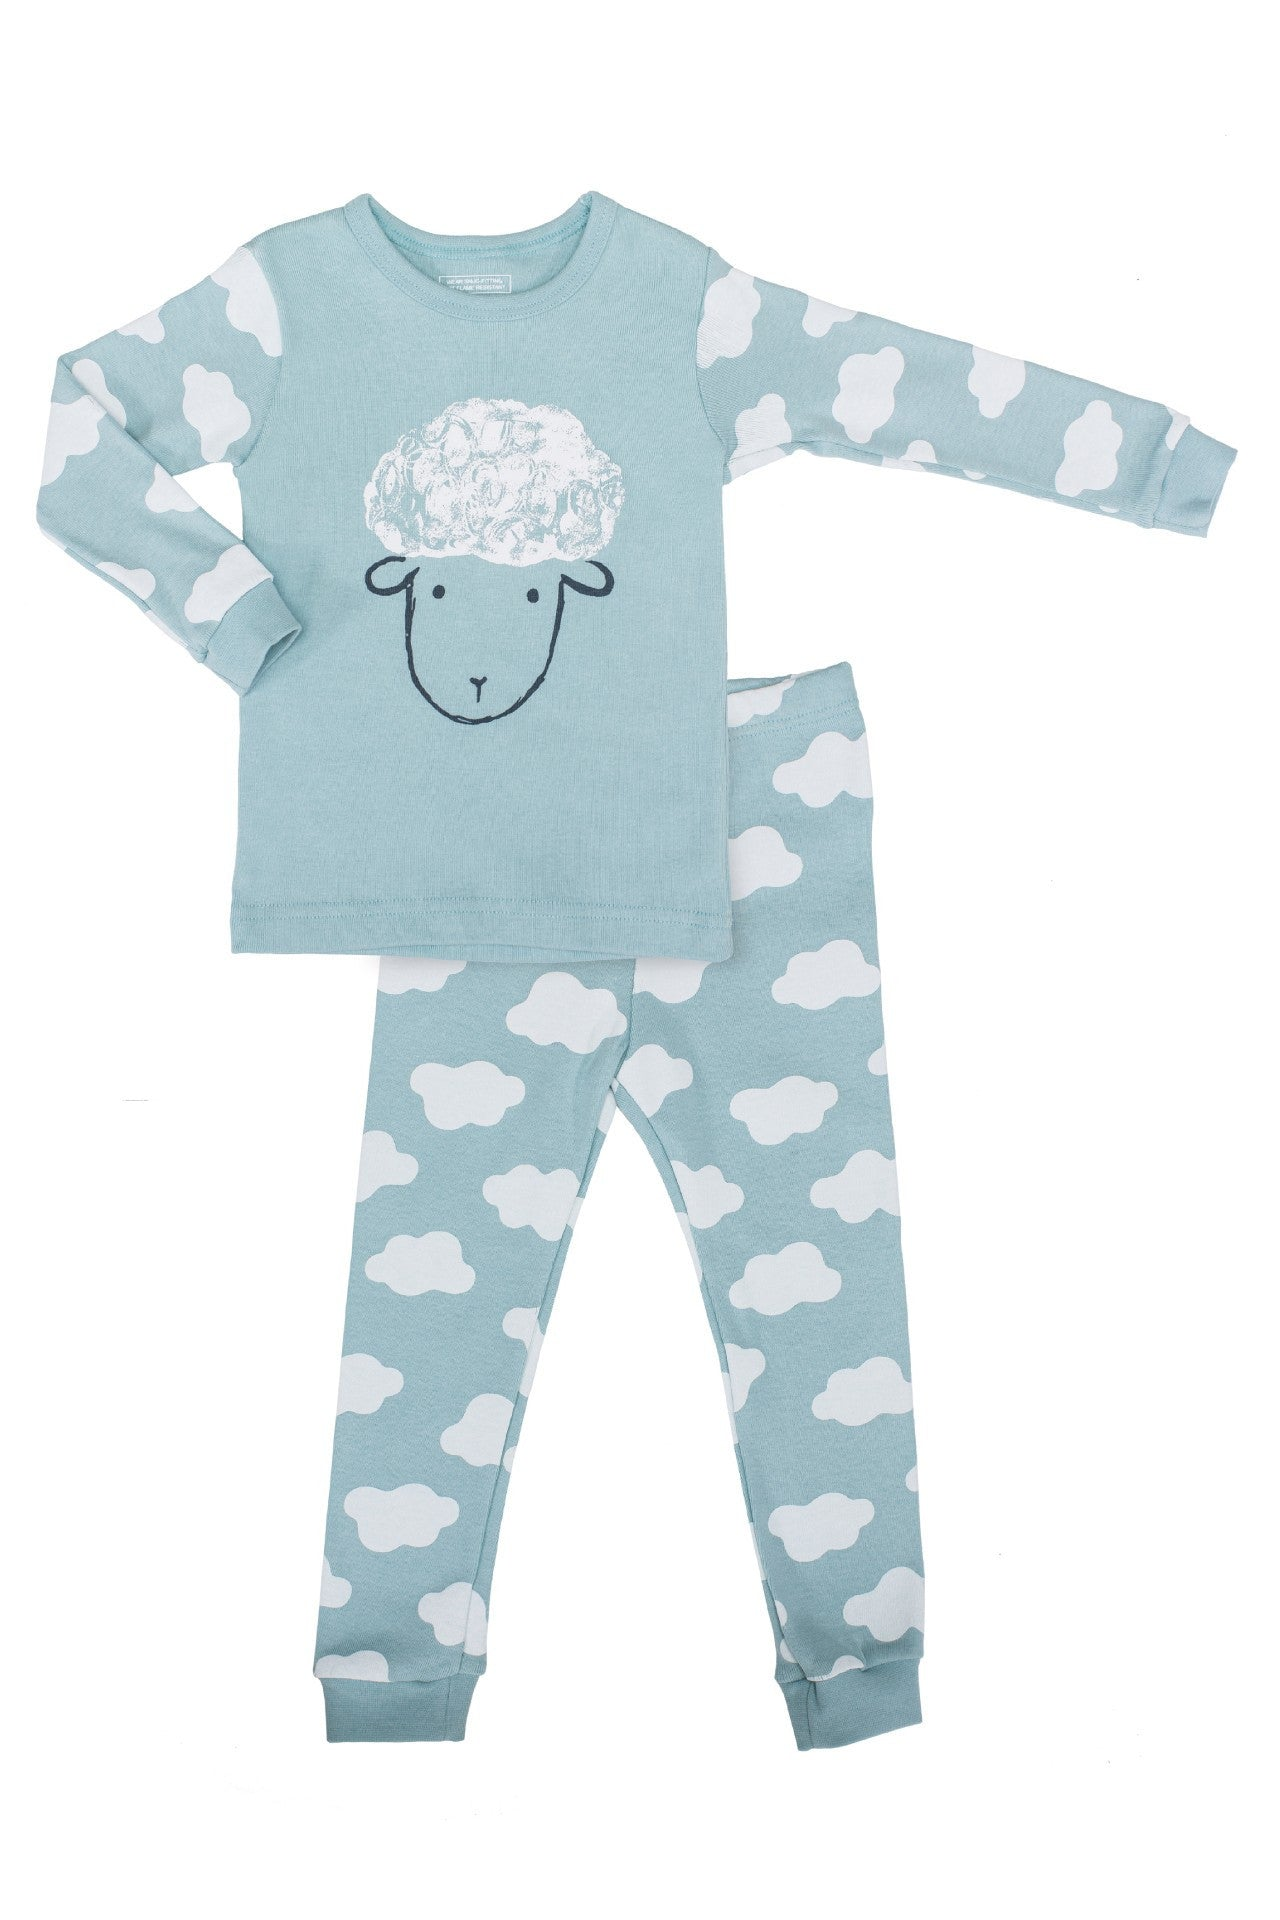 20s Cotton Count - Medium Warmth Pajamas - Counting Sheep (Blue)